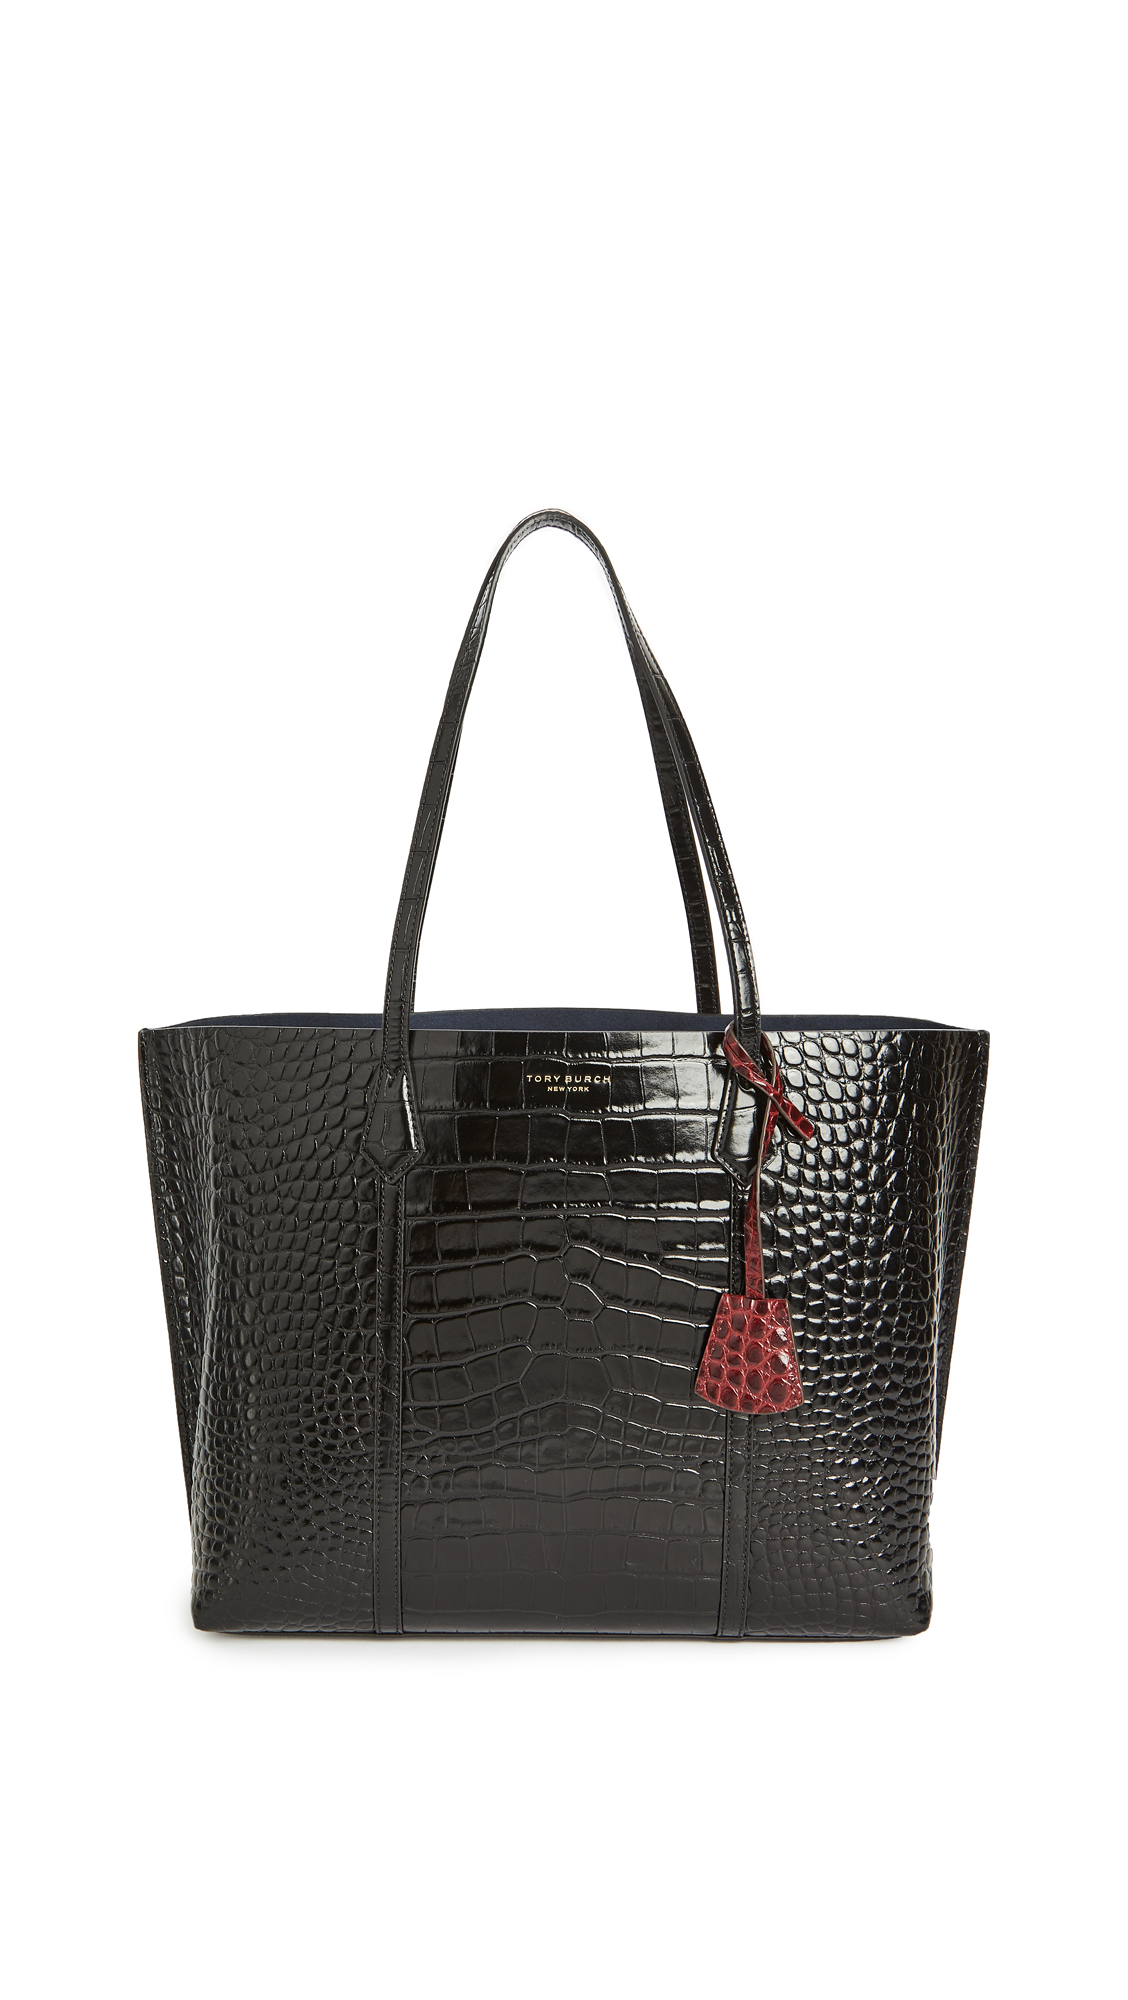 Tory Burch Perry Embossed Triple-compartment Tote